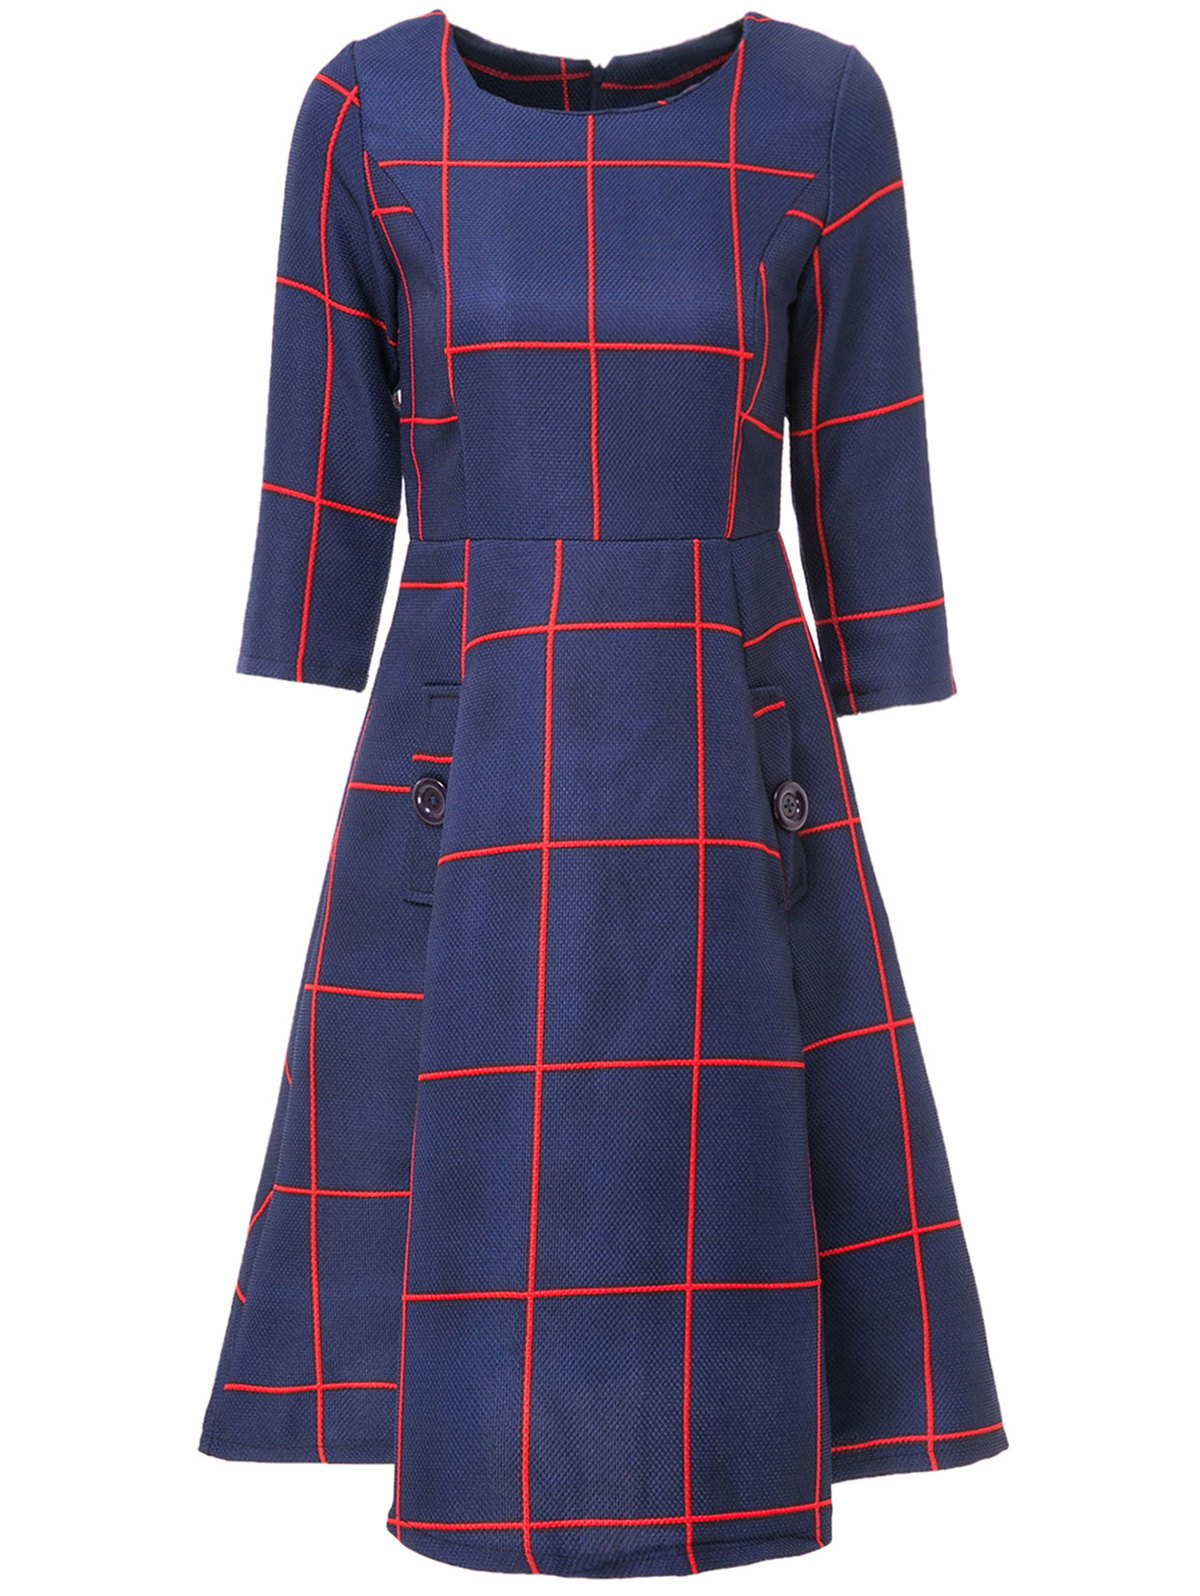 Chic 3/4 Sleeve Round Collar Plaid Women's A-Line Dress